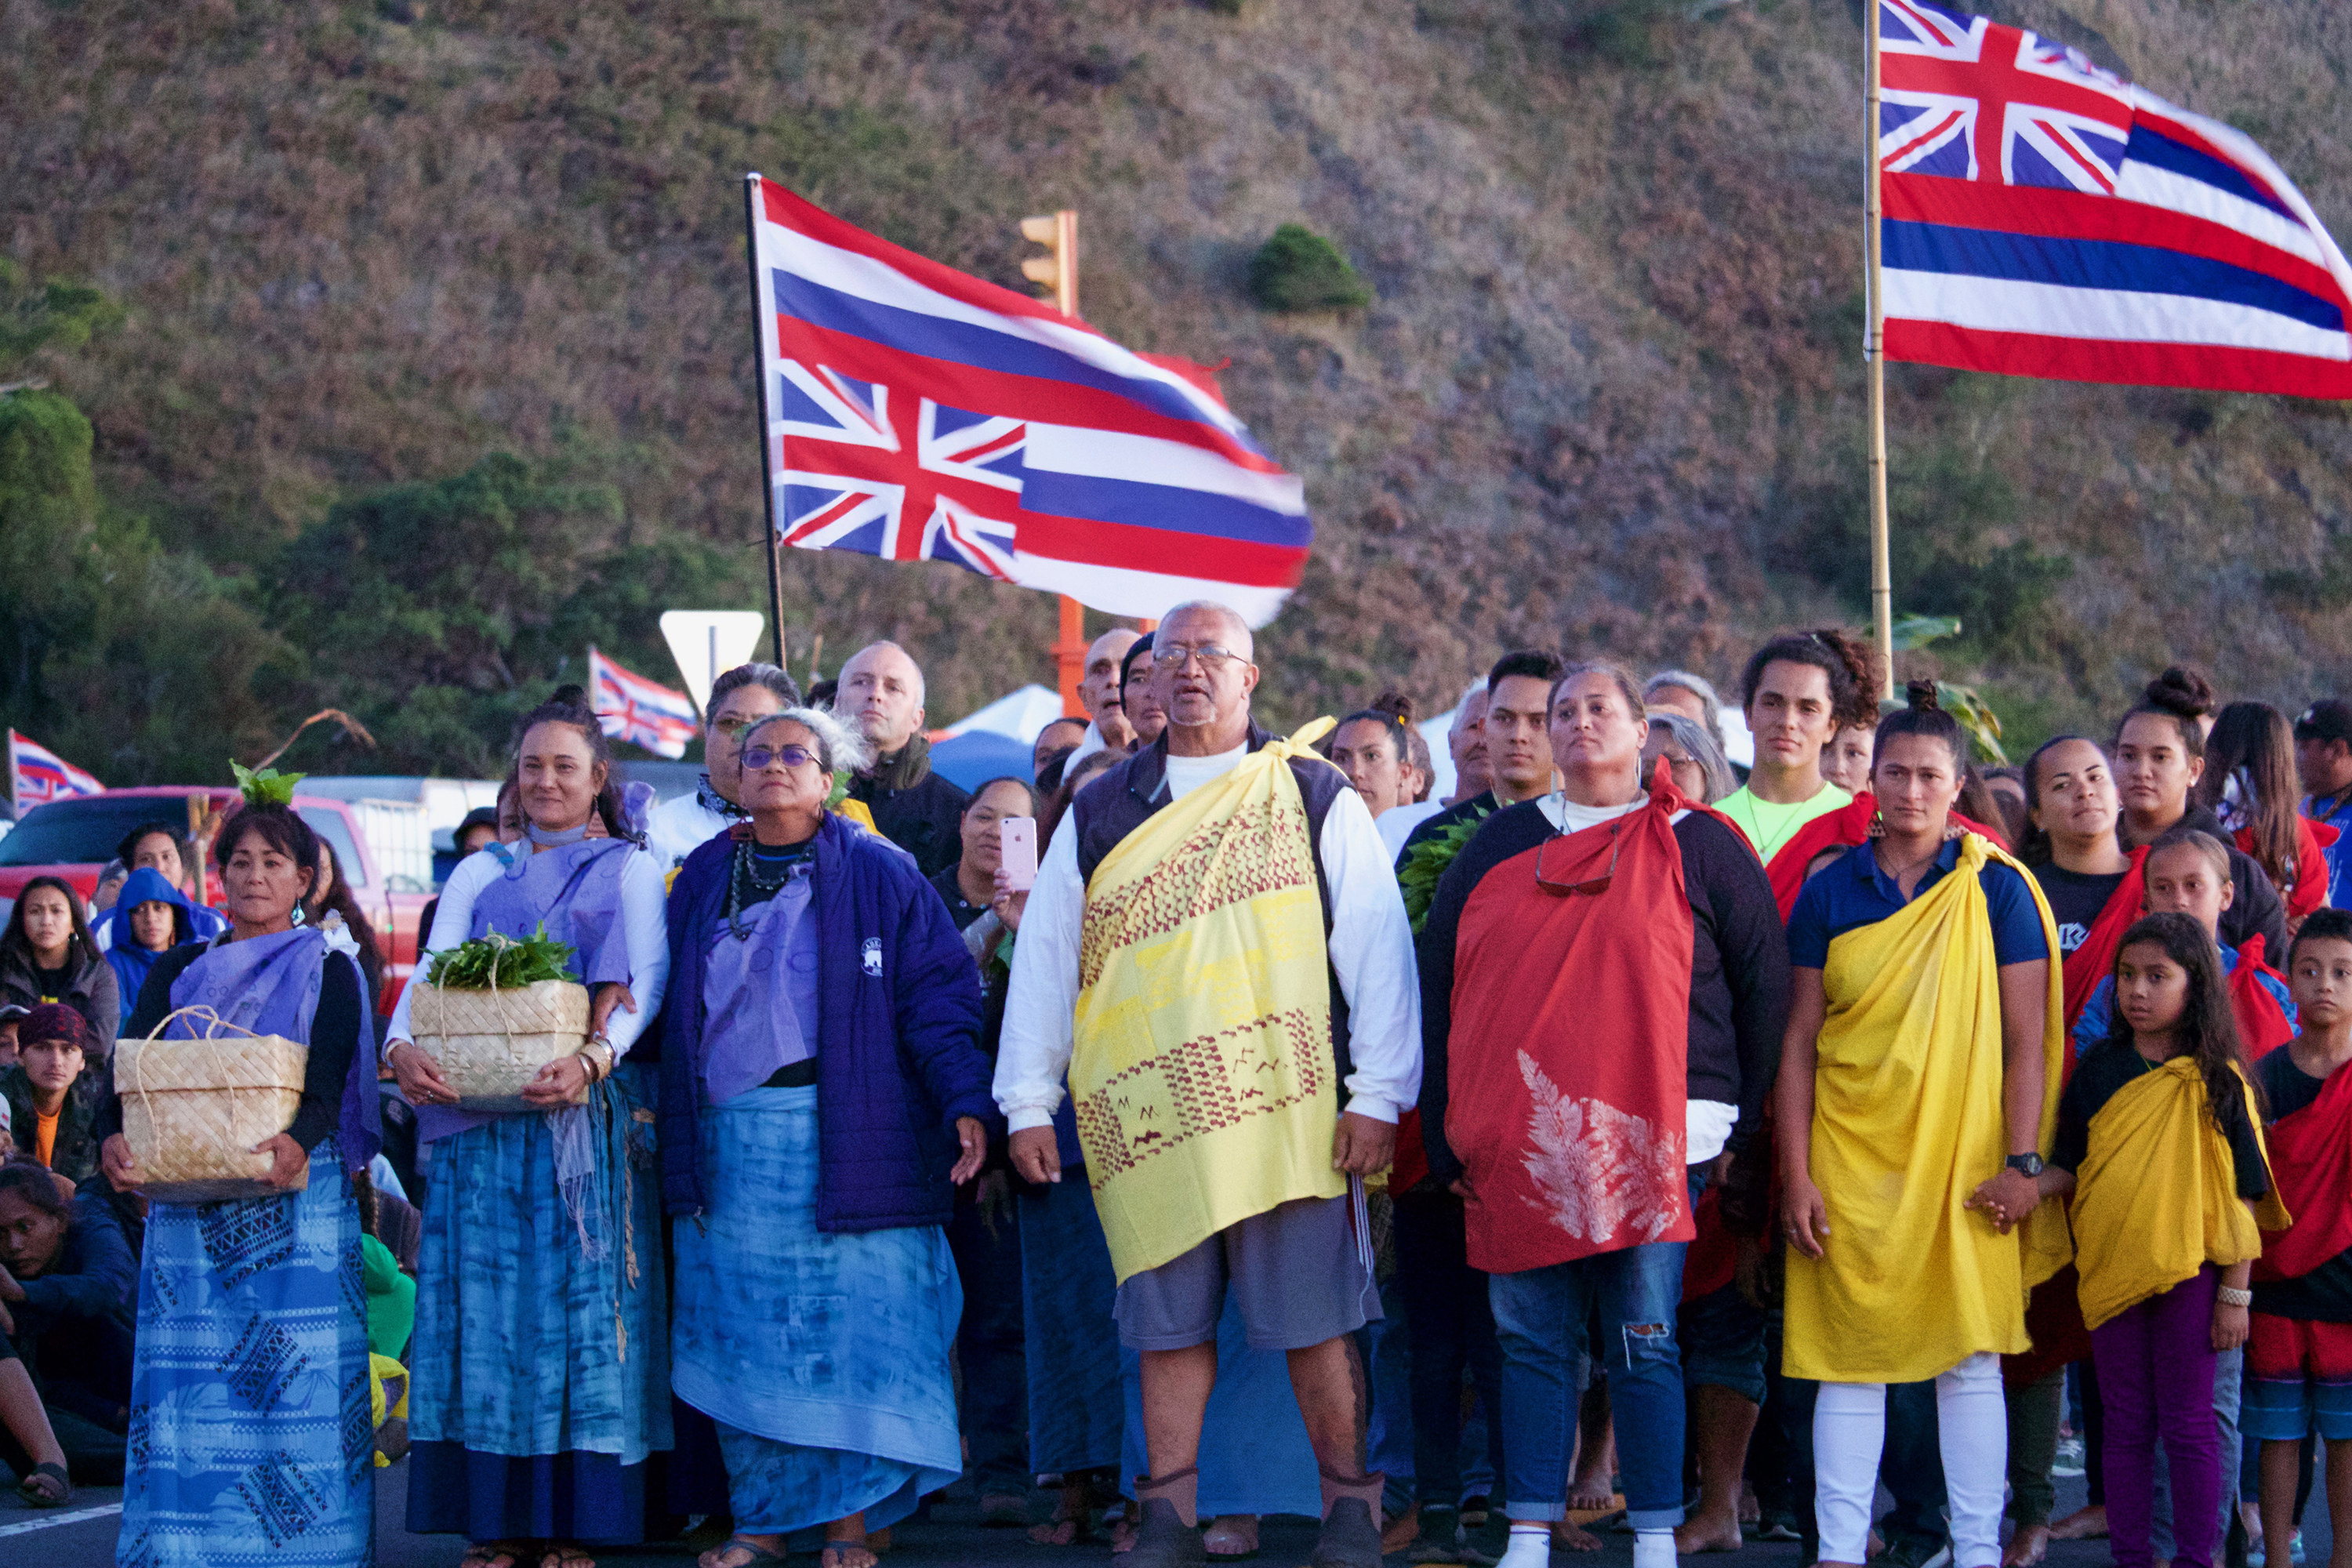 A group of Hawaii'ians with two flags in front of a natural background.